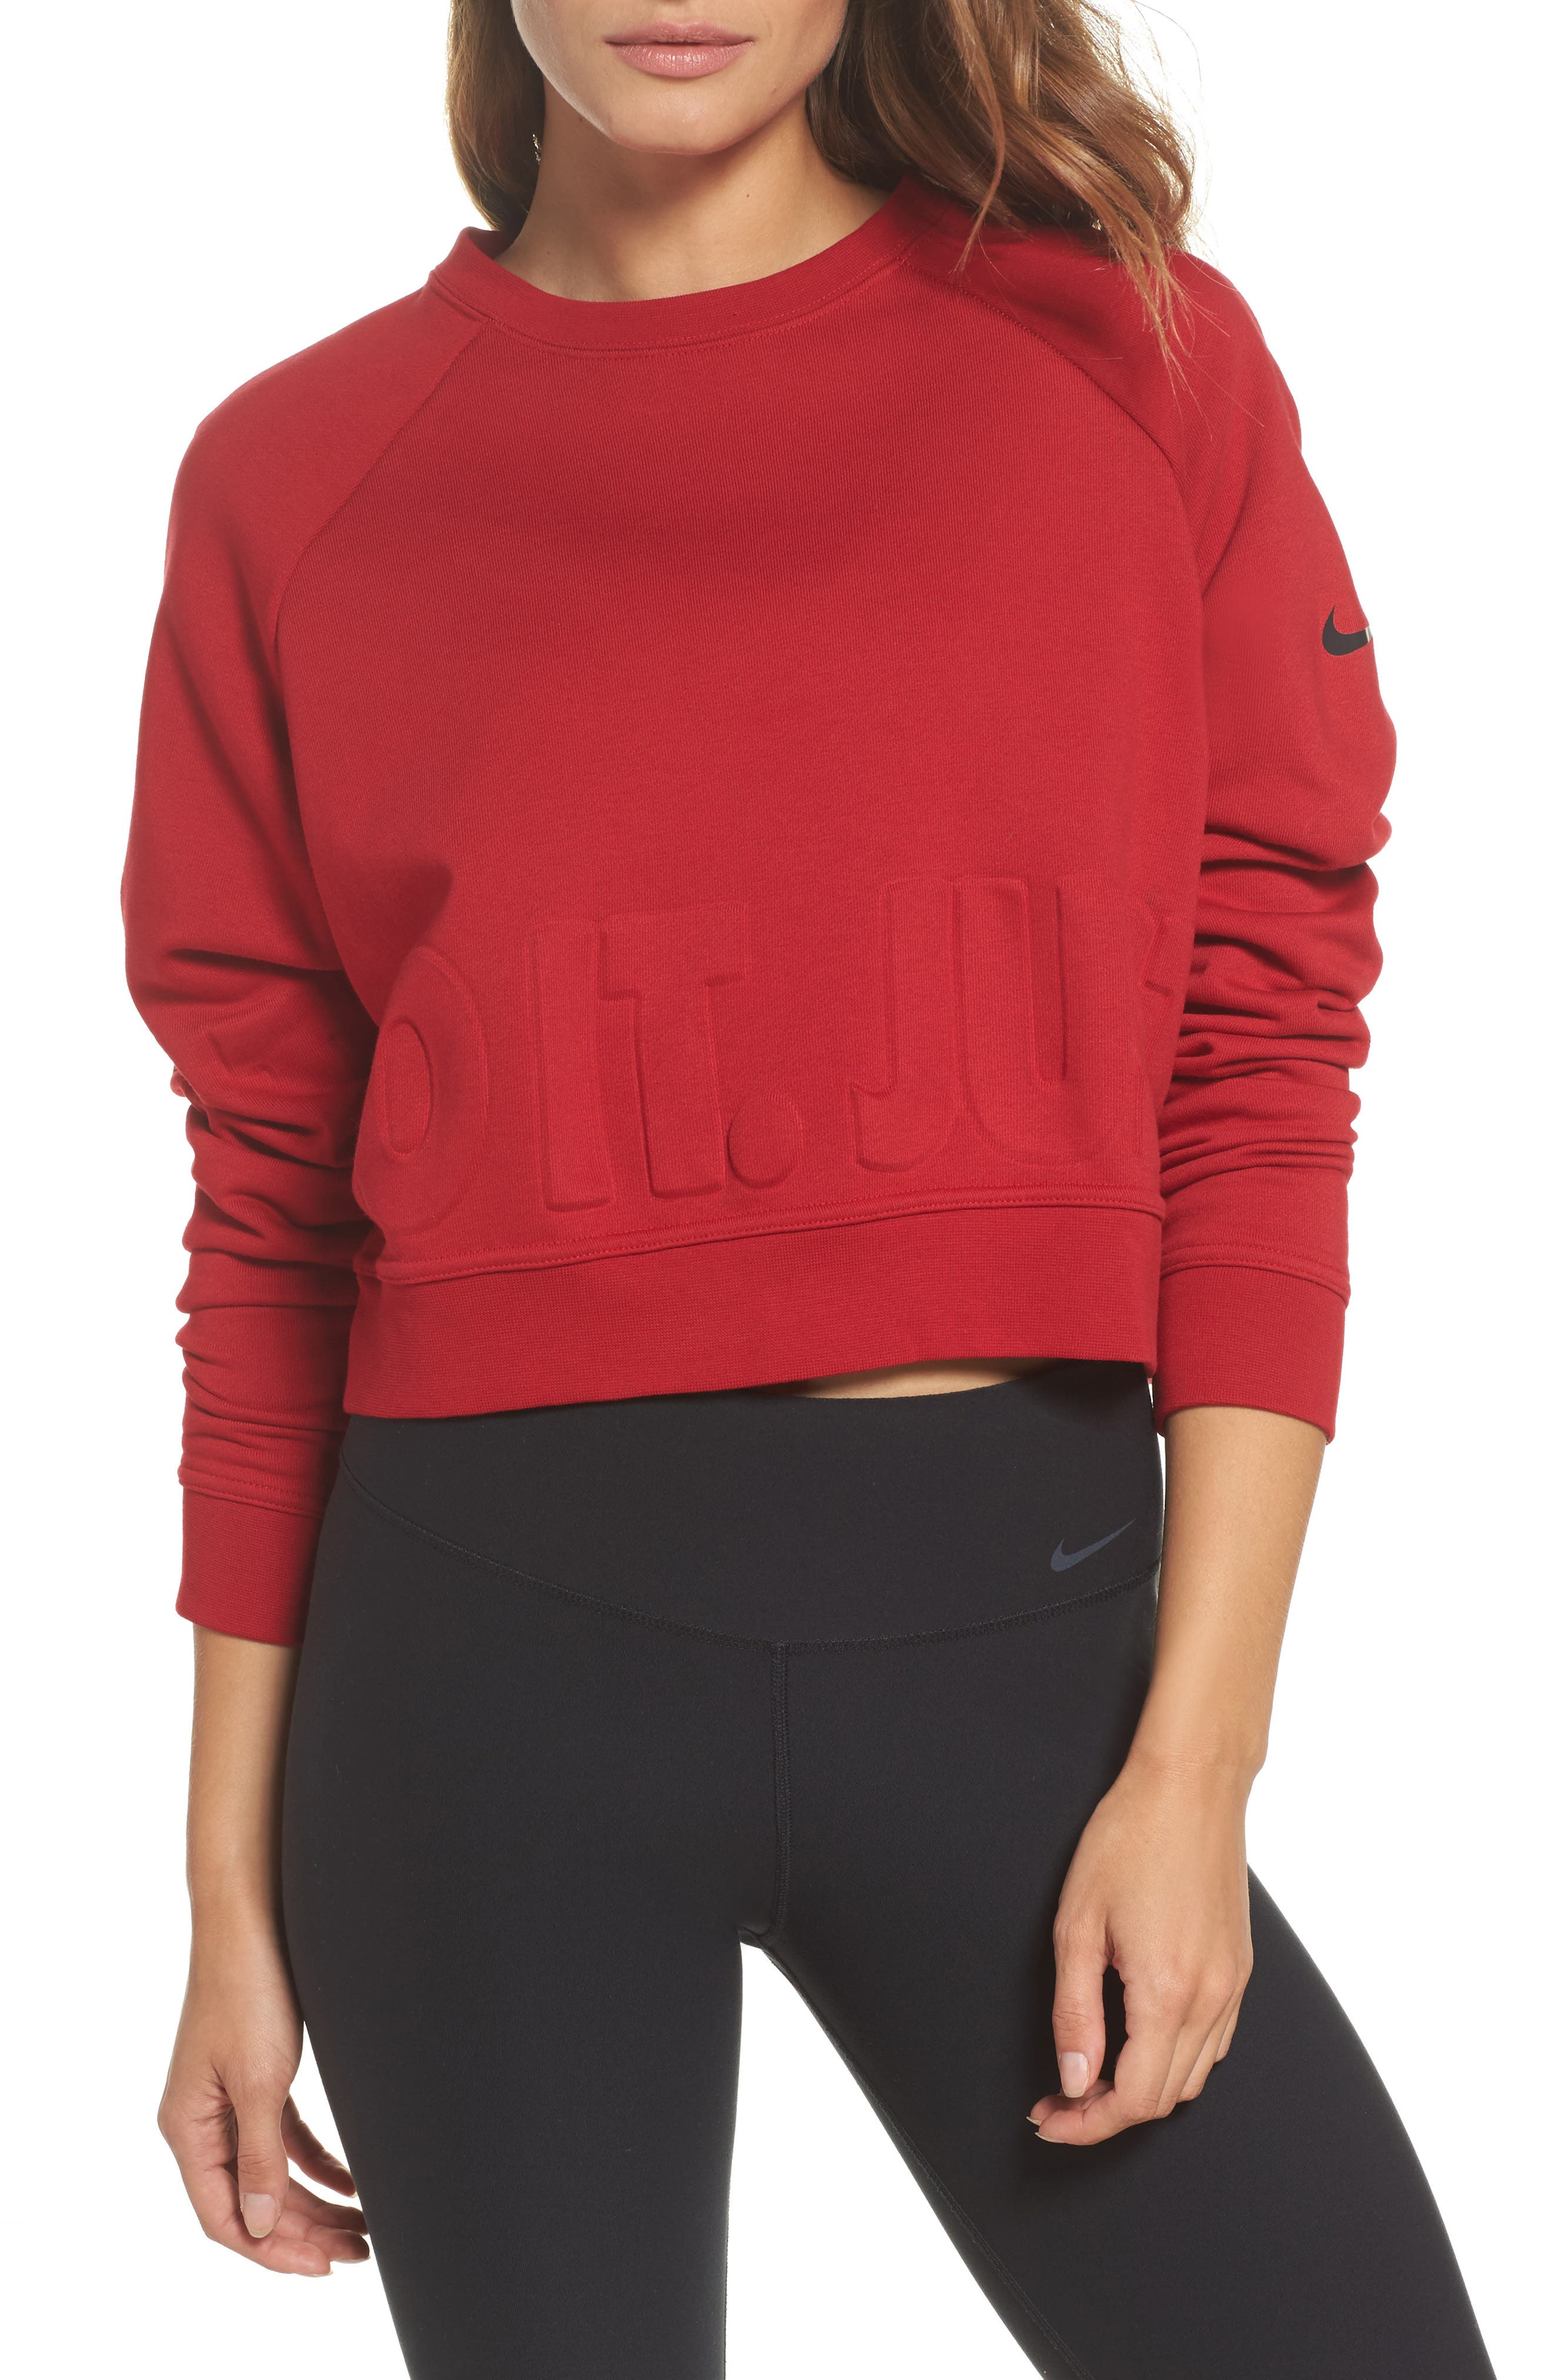 Long Sleeve Crop Training Top,                             Main thumbnail 1, color,                             Gym Red/ Black